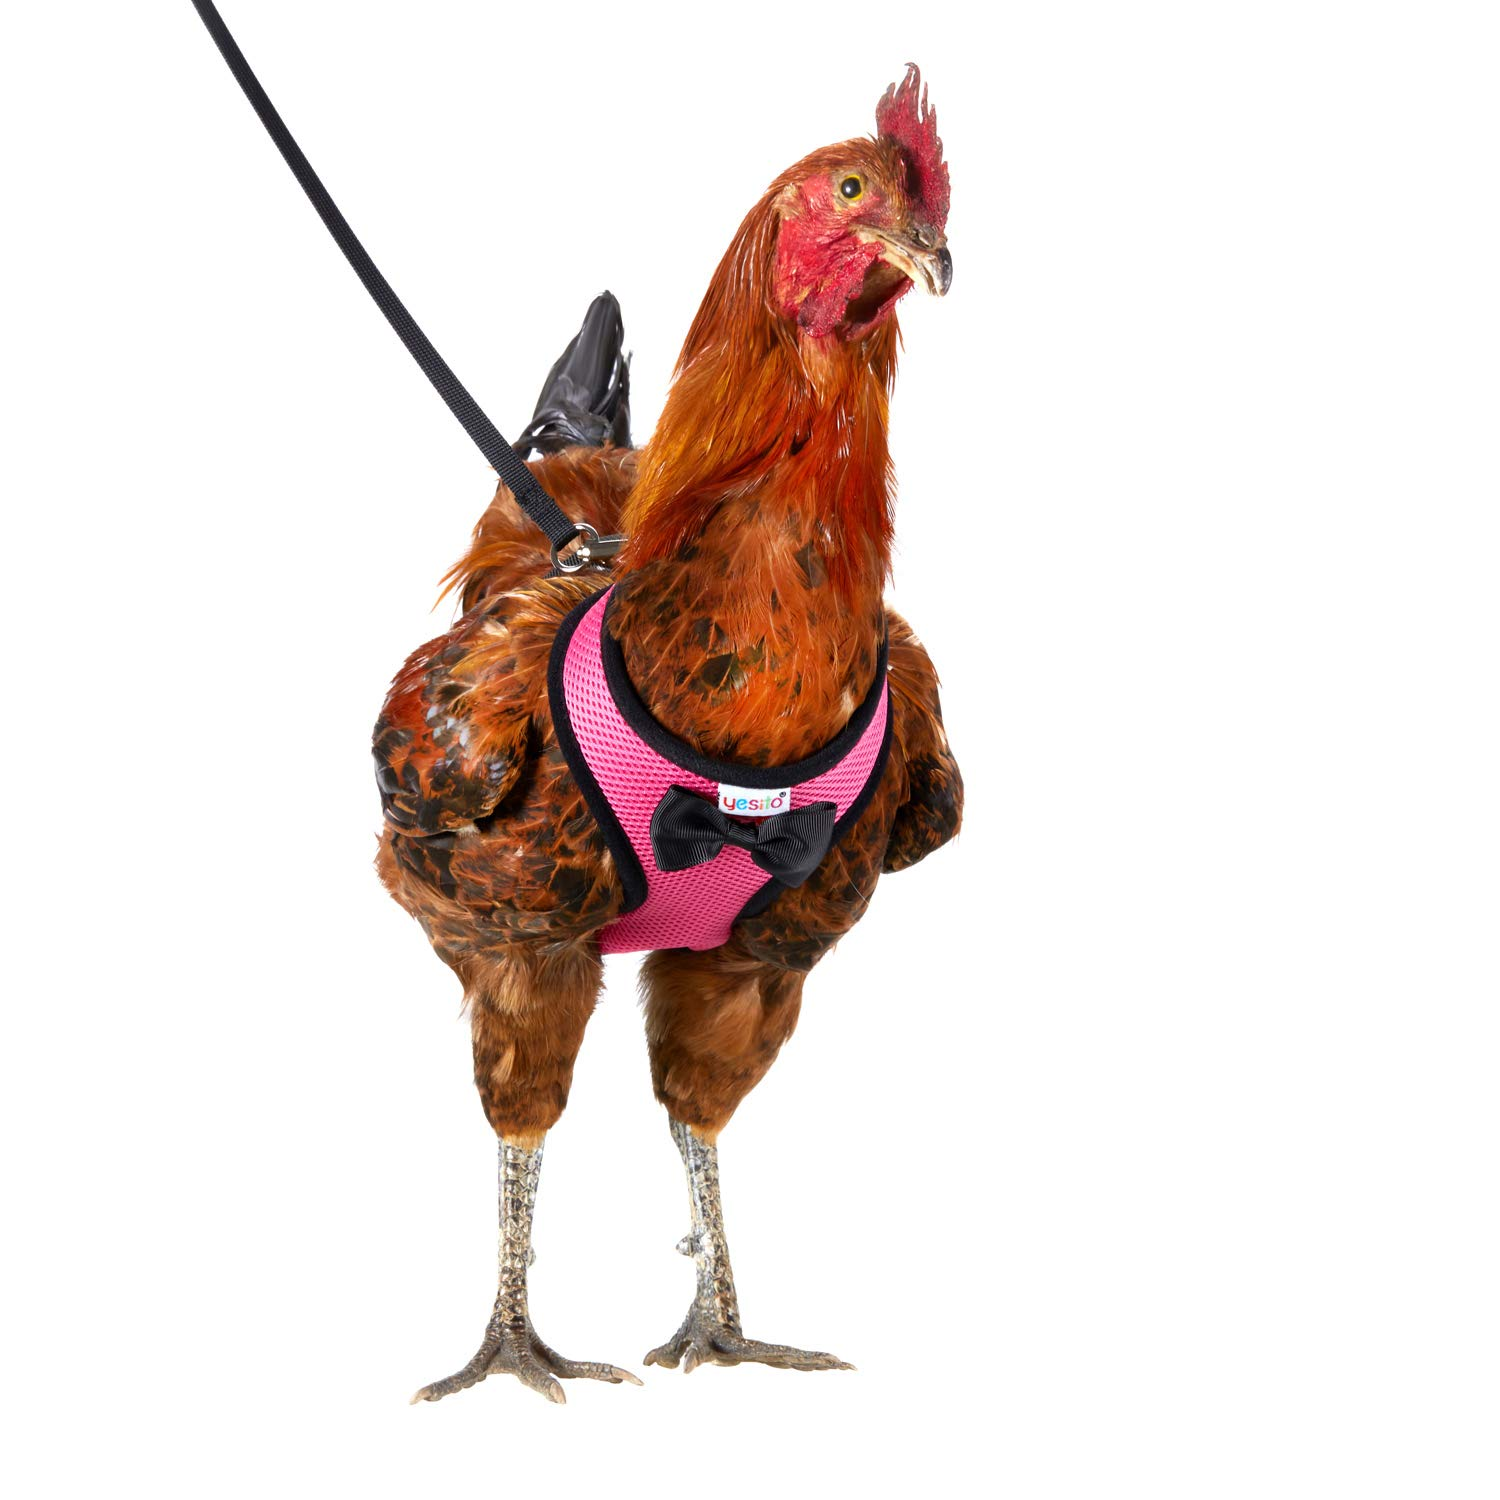 Yesito Chicken Harness Hen Size With 6ft Matching Leash - Adjustable, Resilient, Comfortable, Breathable, Small, Suitable for Chicken Weighing about 2.2 Pound,Pink